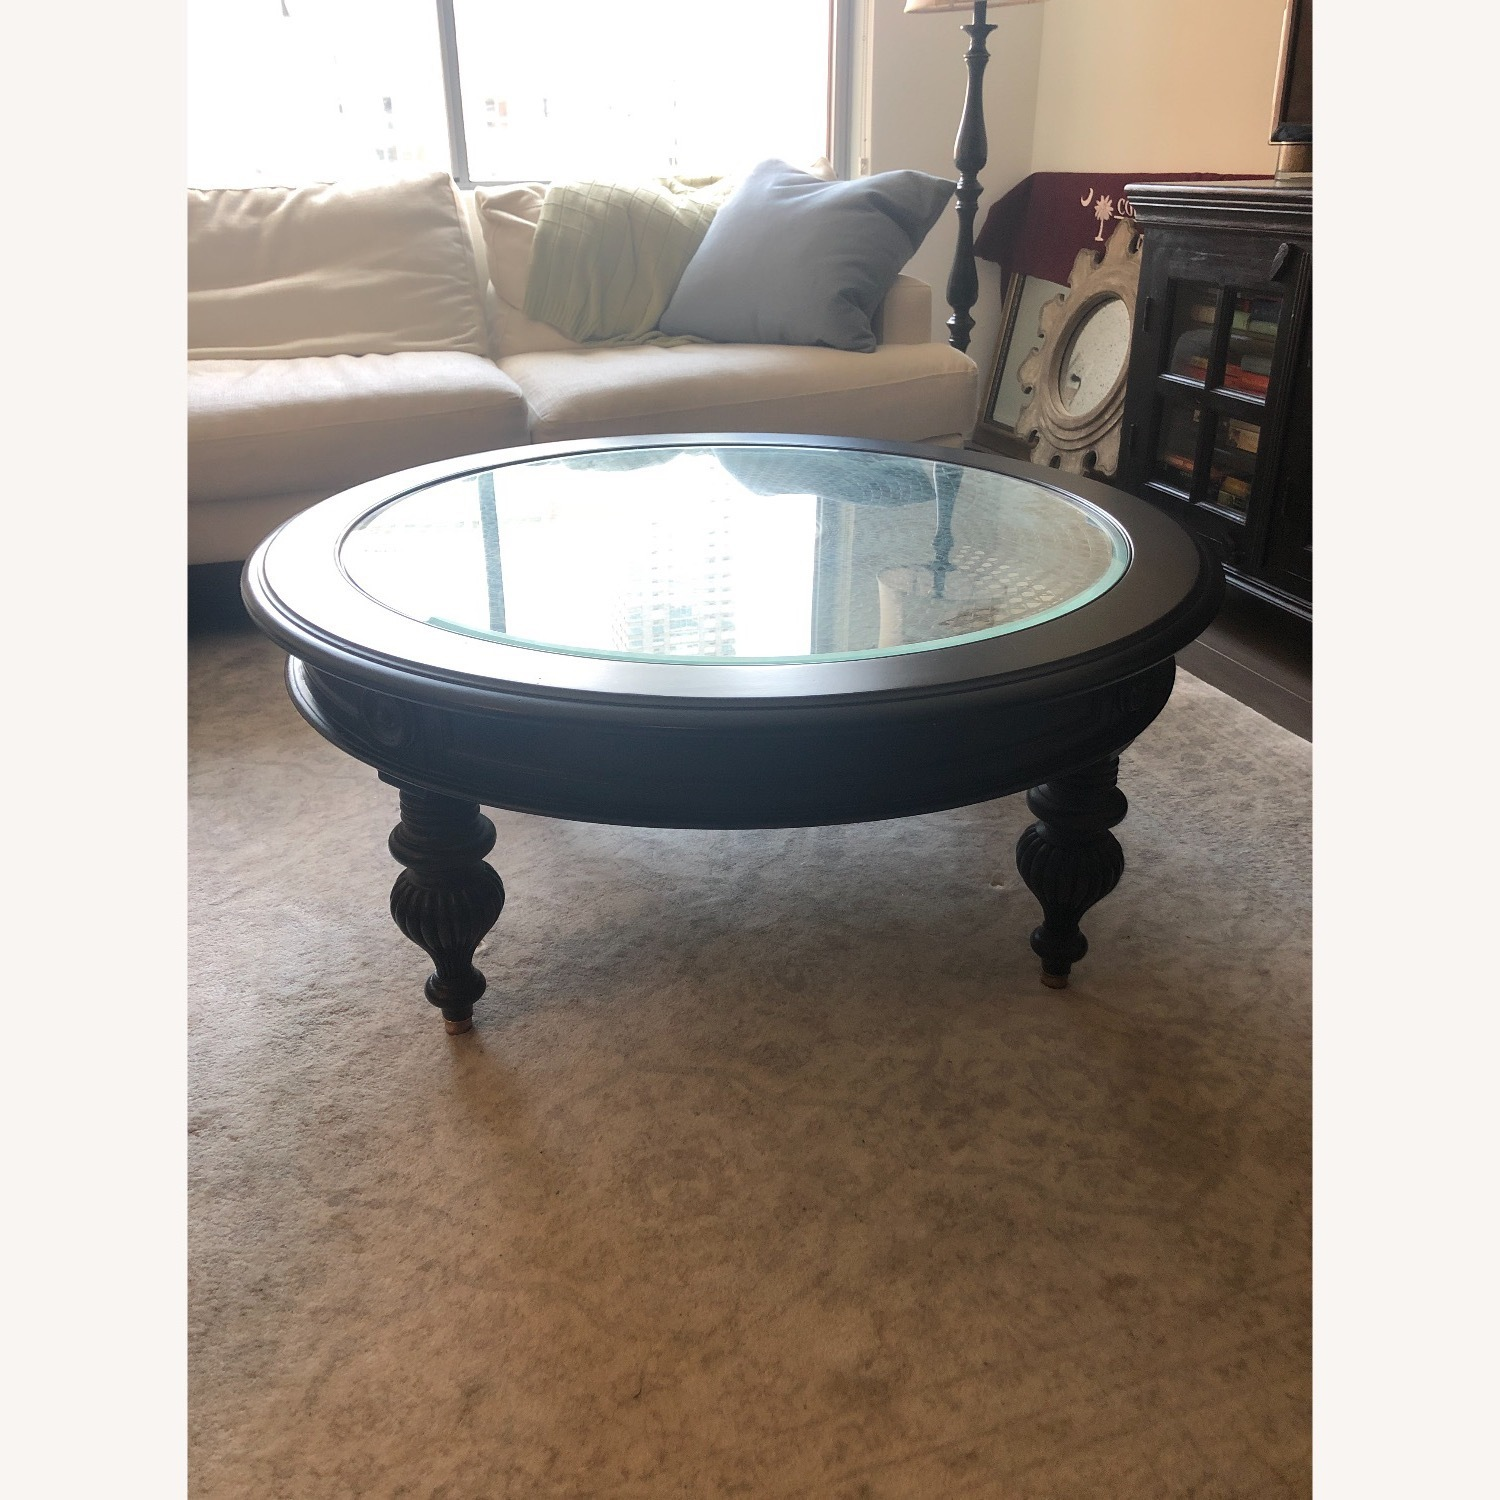 Ethan Allen Maya Round Coffee Table in Peppercorn - image-1